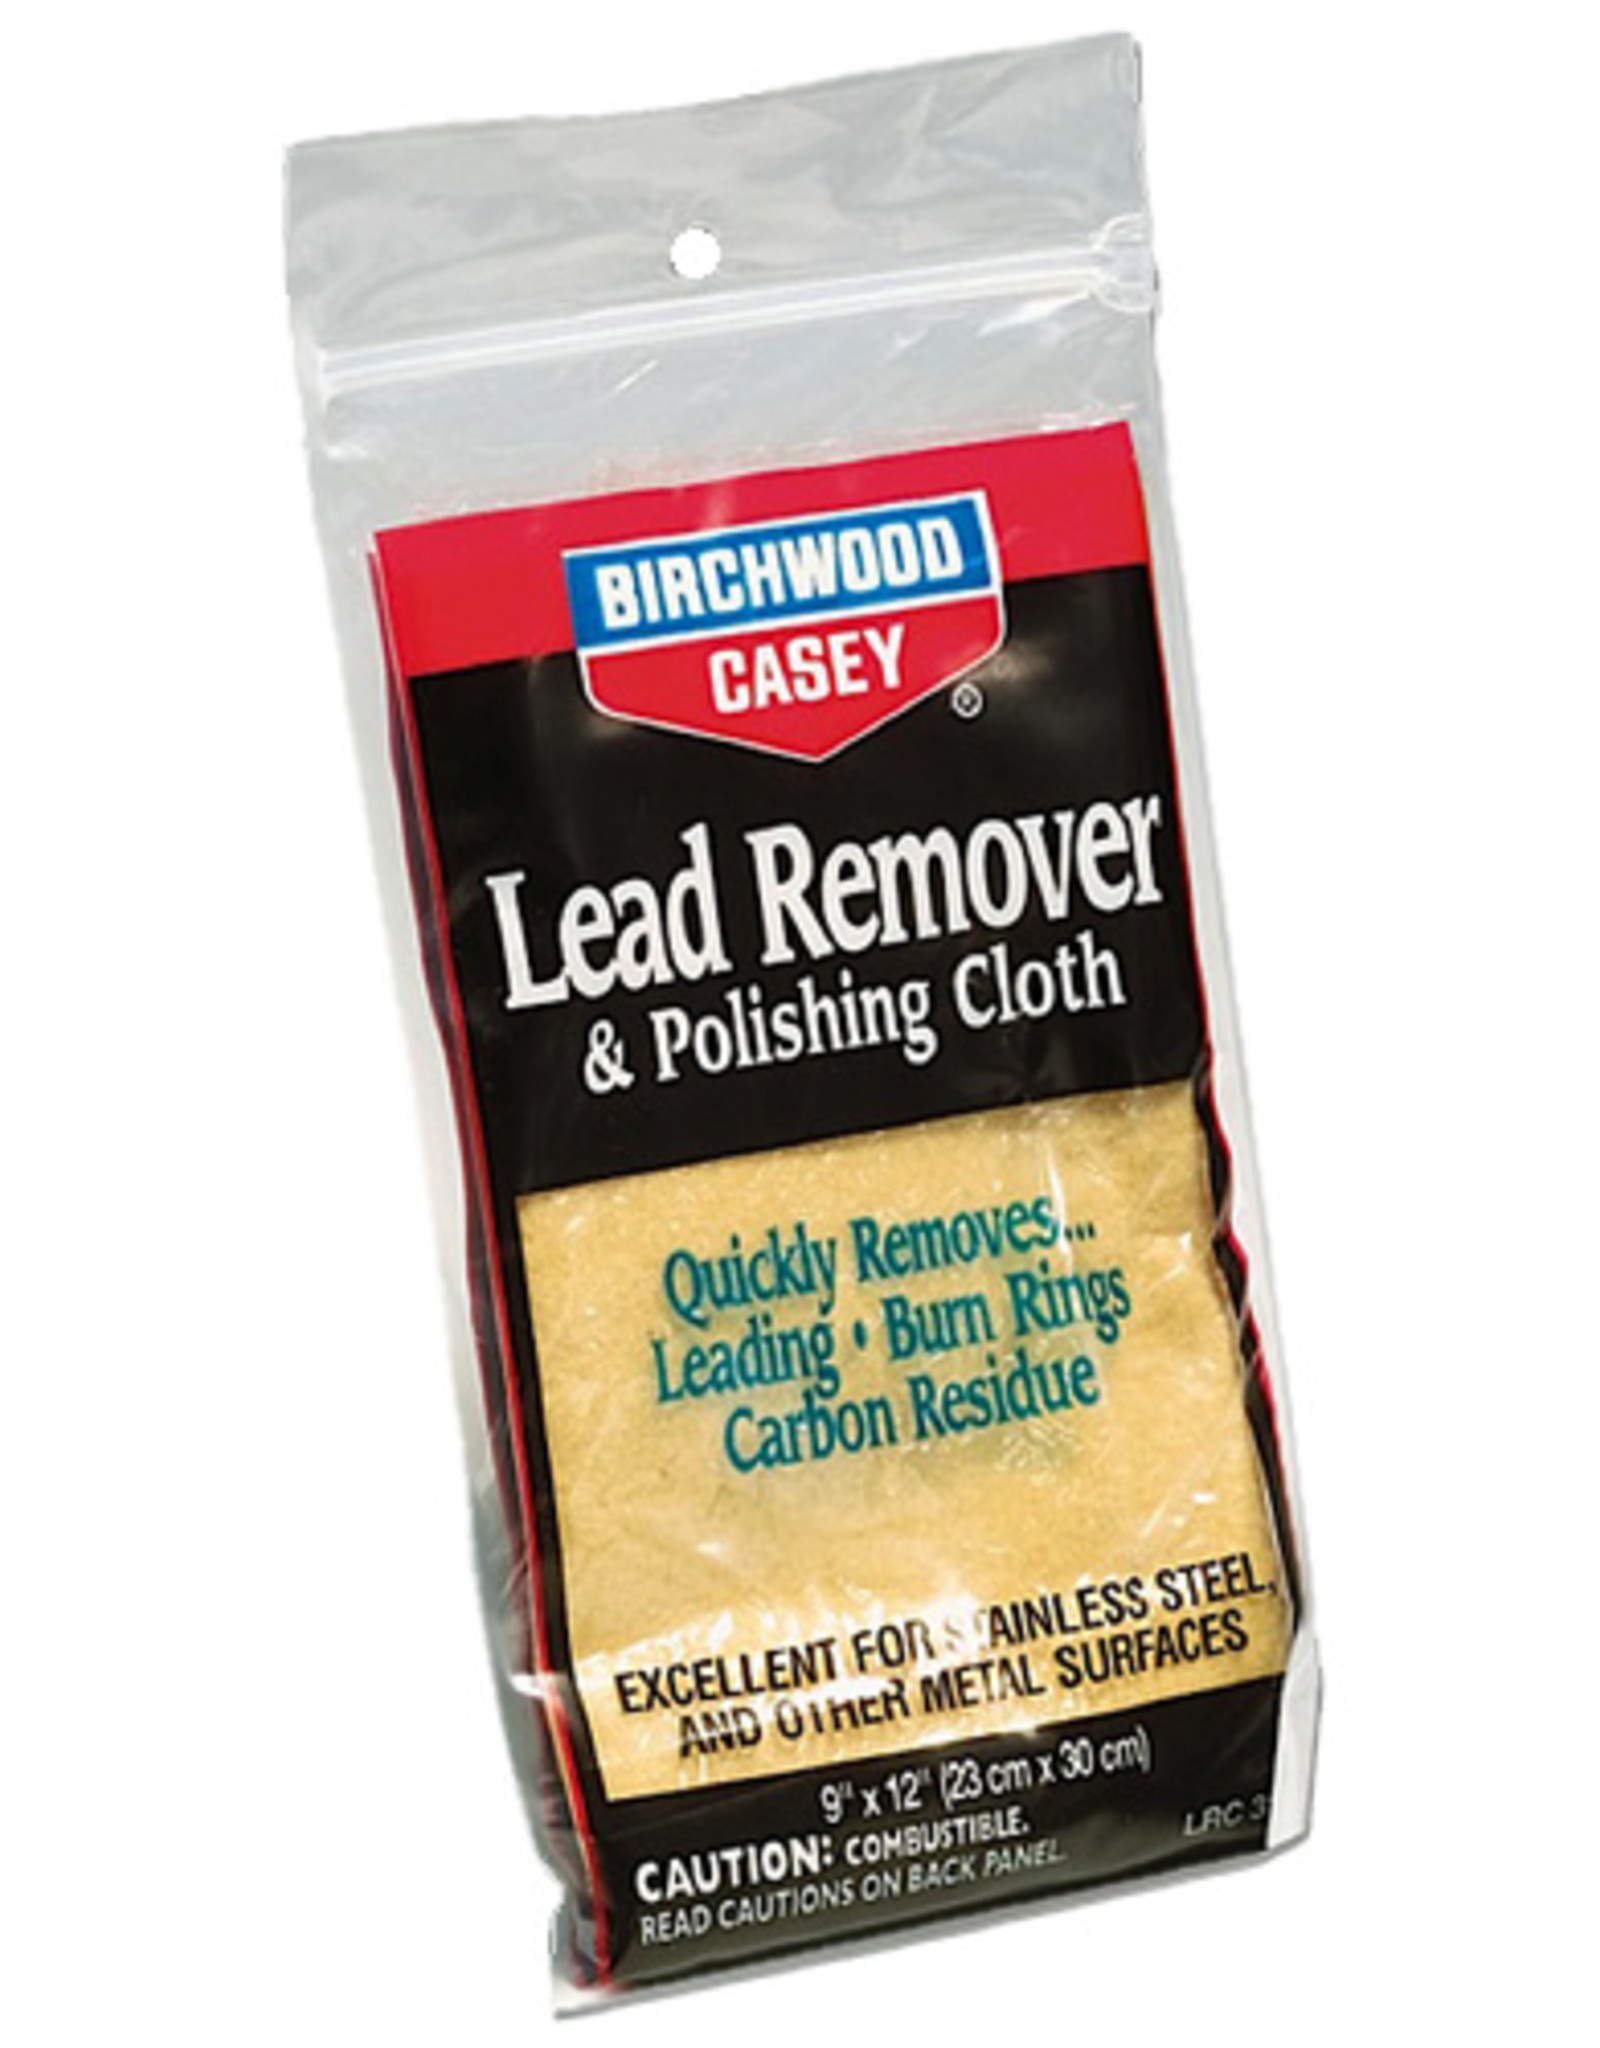 BIRCHWOOD CASEY BWC Lead Remover Polishing Cloth Lead Remover Polishing Cloth